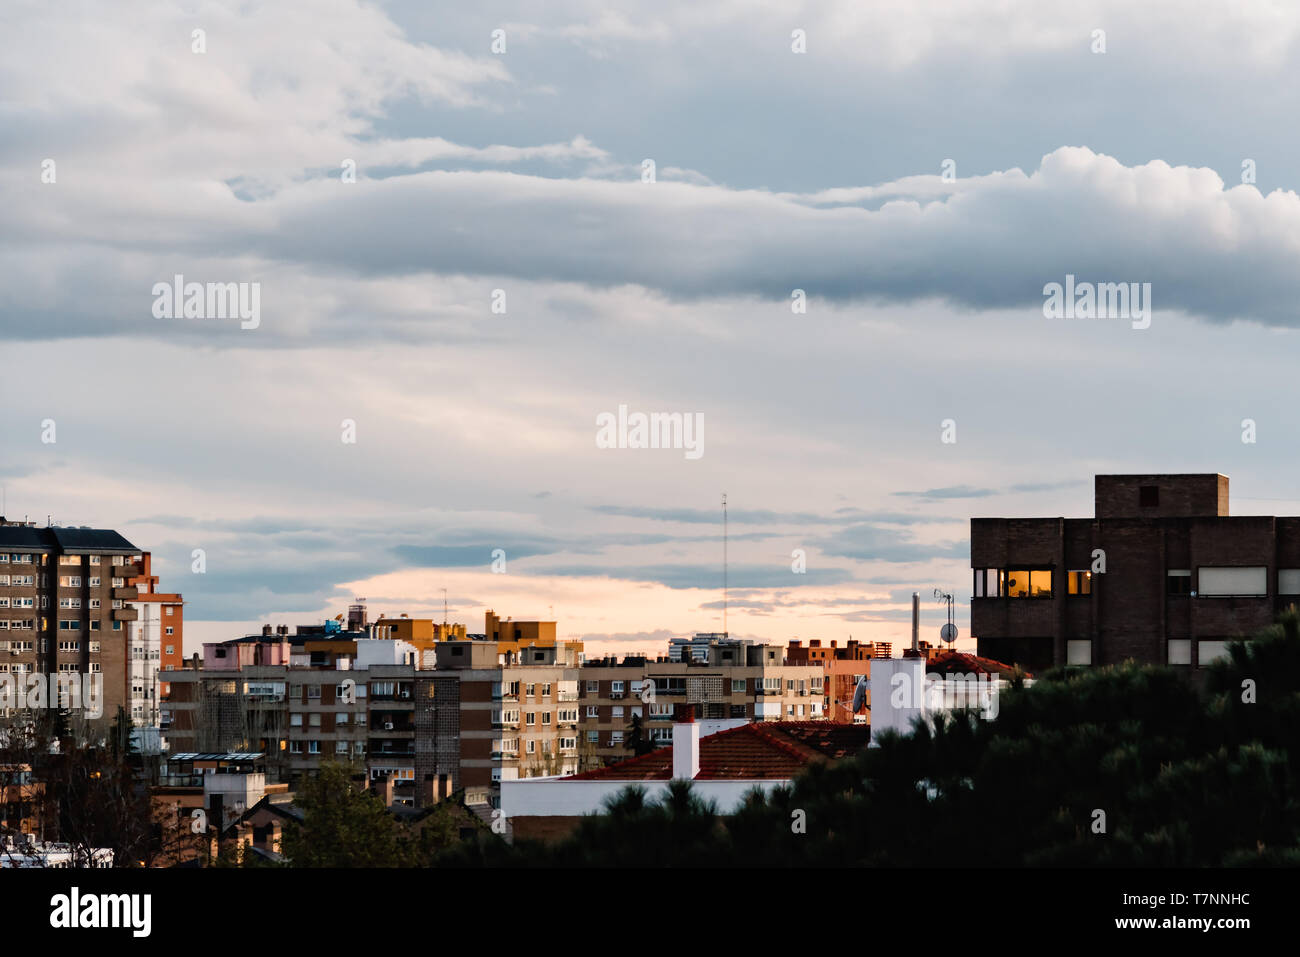 Cityscape of residential district of Madrid against cloudy sky at sunset. Ciudad Lineal, Madrid, Spain Stock Photo